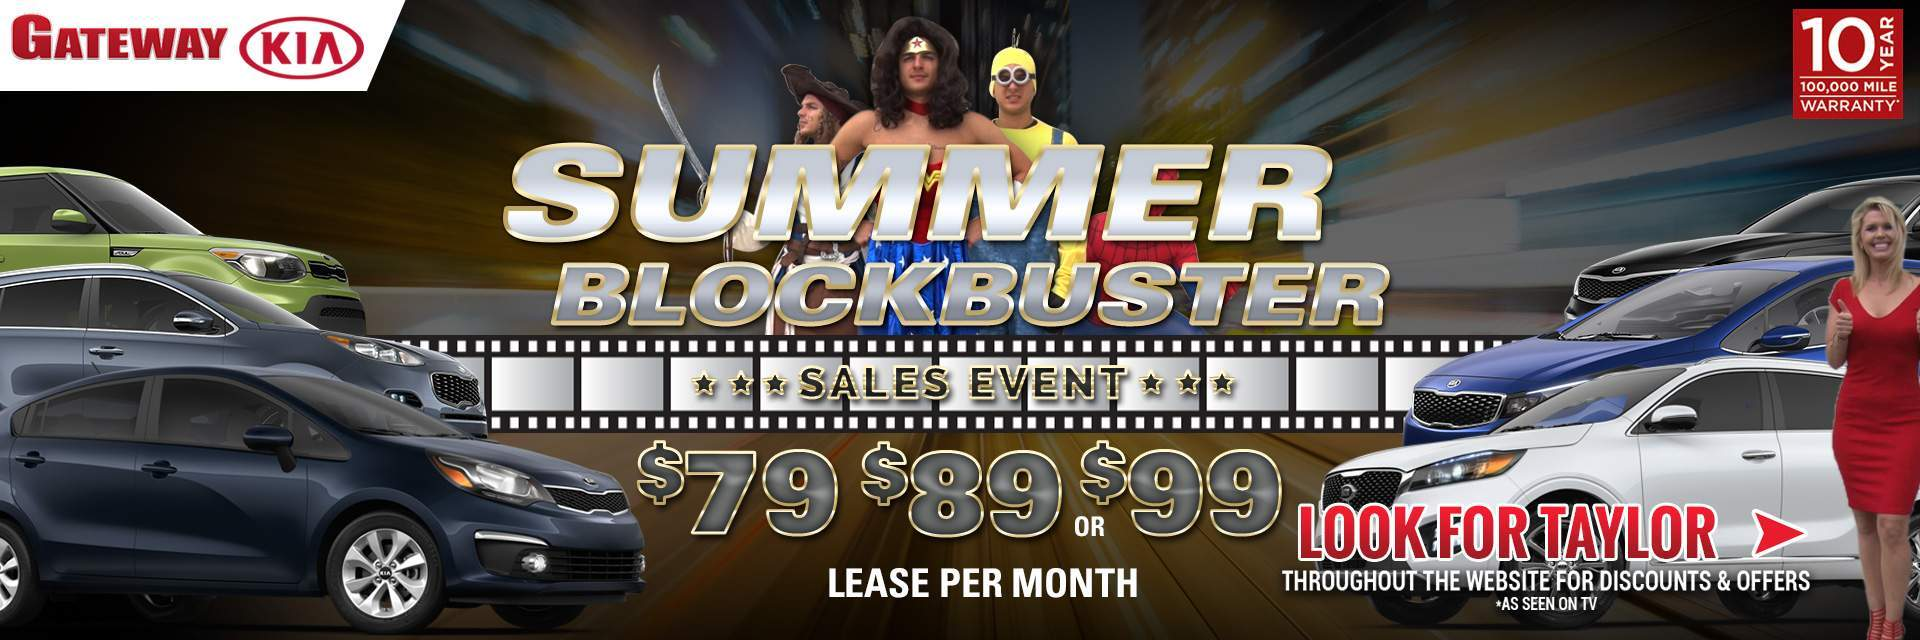 Summer Blockbuster Savings Event